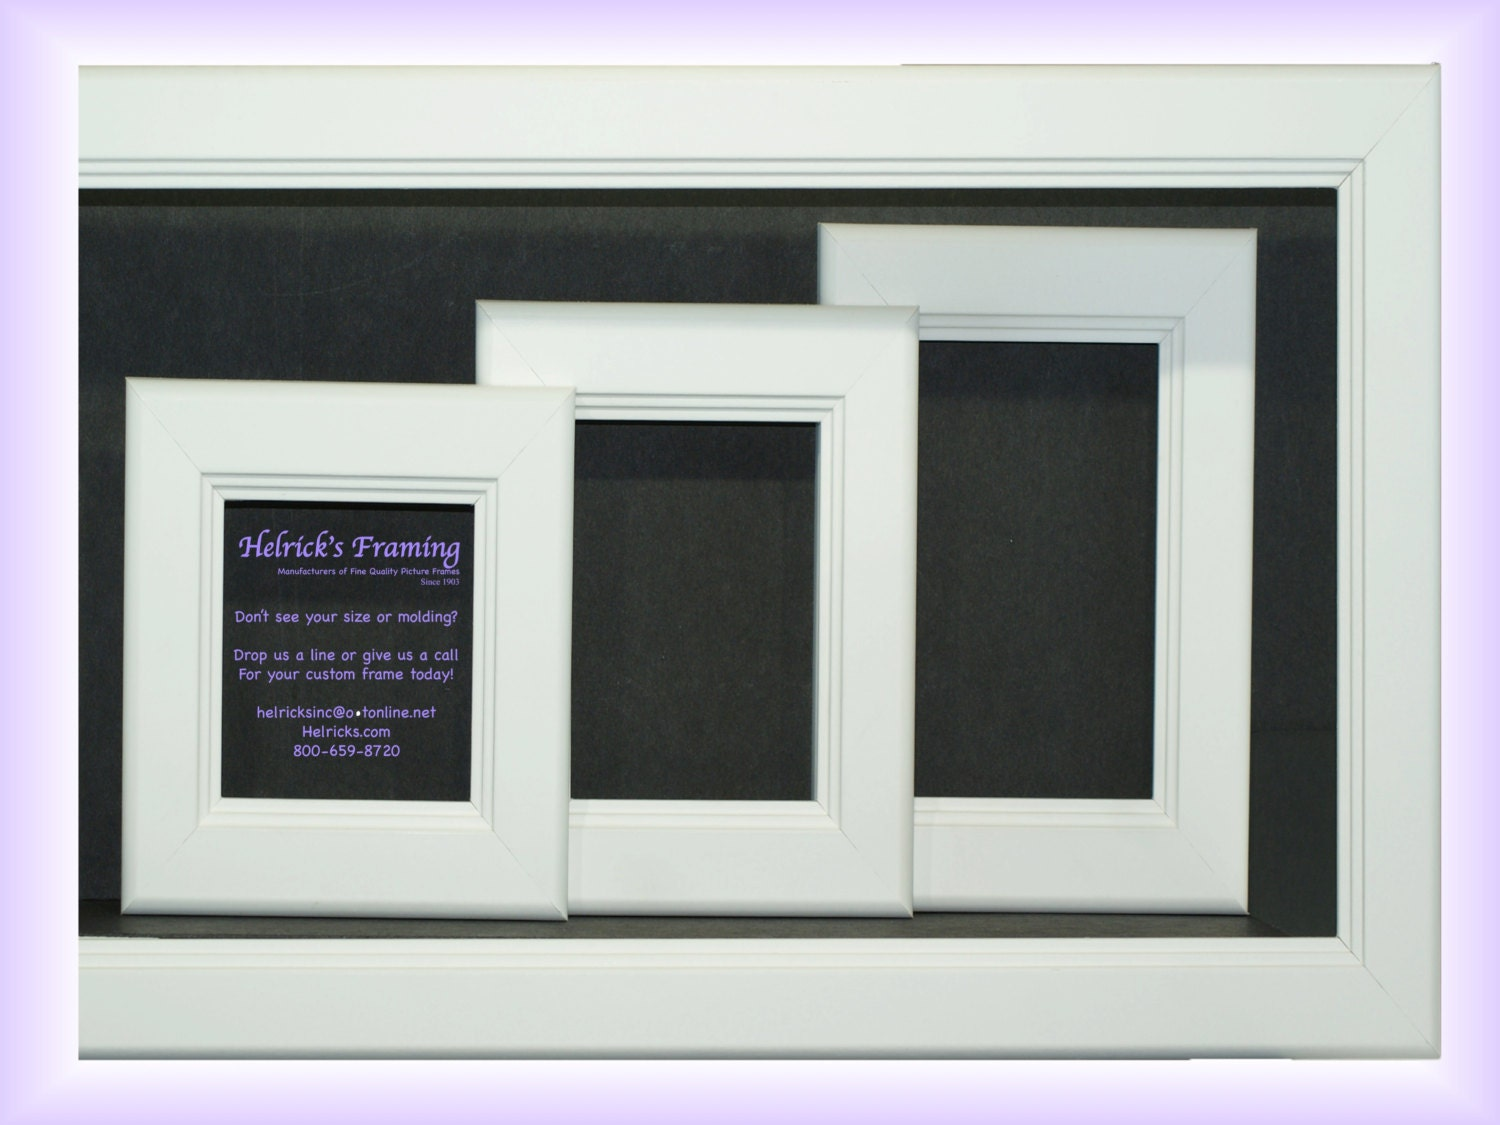 White Picture Frames from 4x4 20x30 or Larger Custom Sizes | Etsy